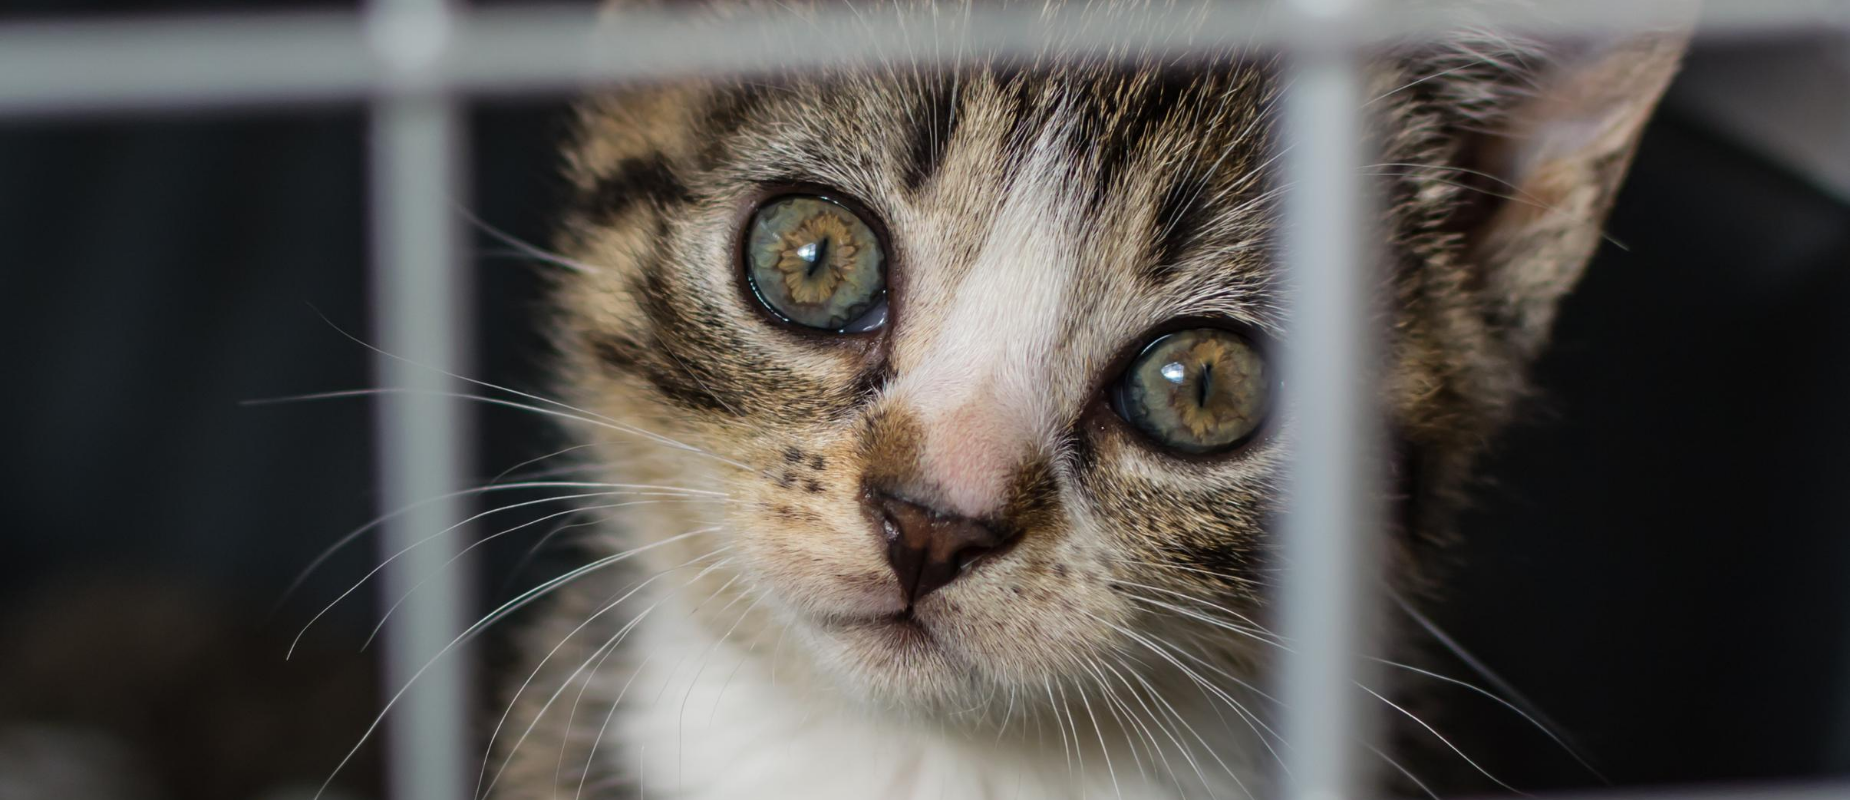 A green-eyed kitten peers through a metal cage